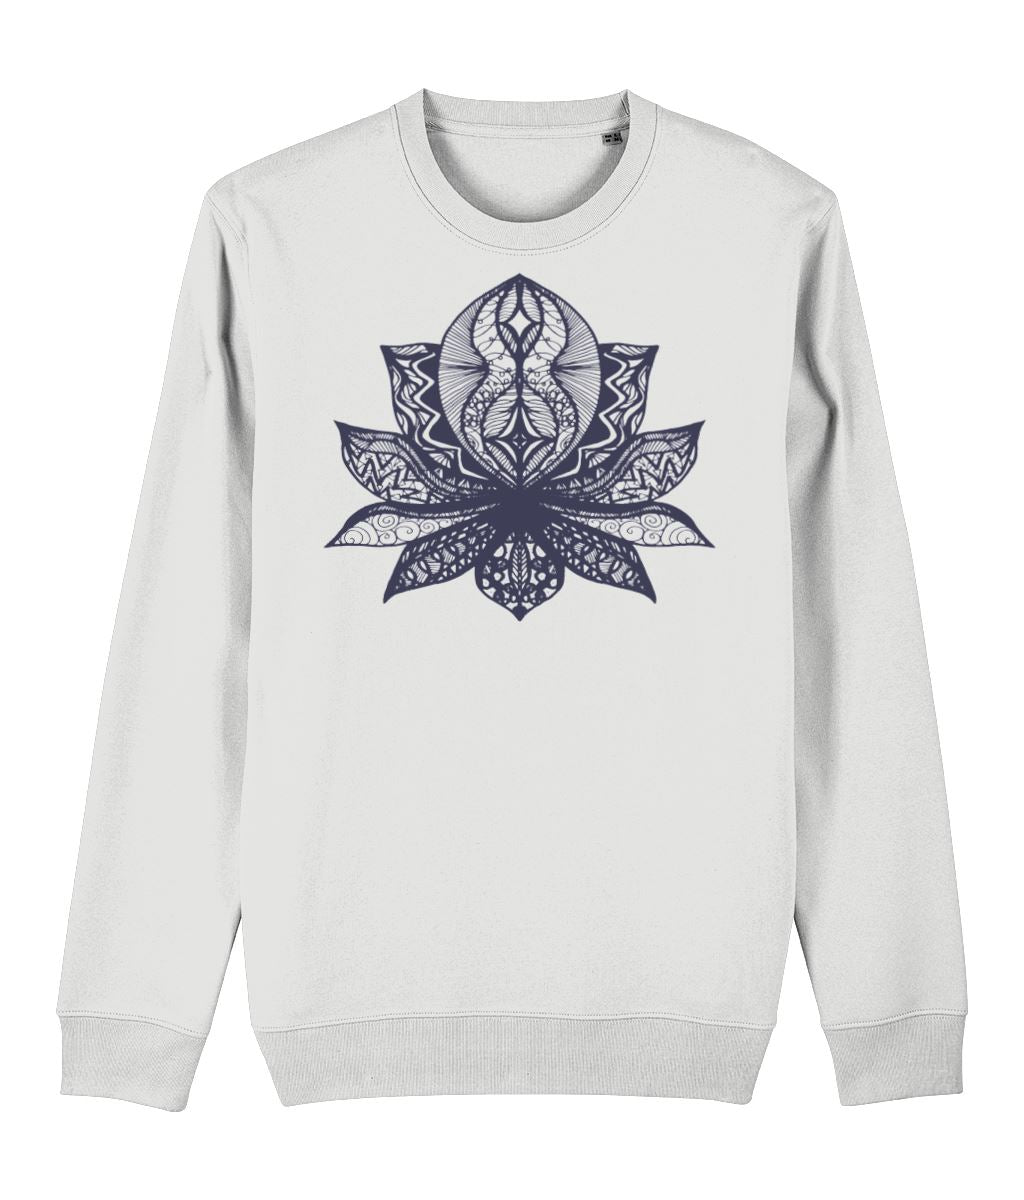 Lotus Flower II Sweatshirt Clothing IndianBelieves White X-Small